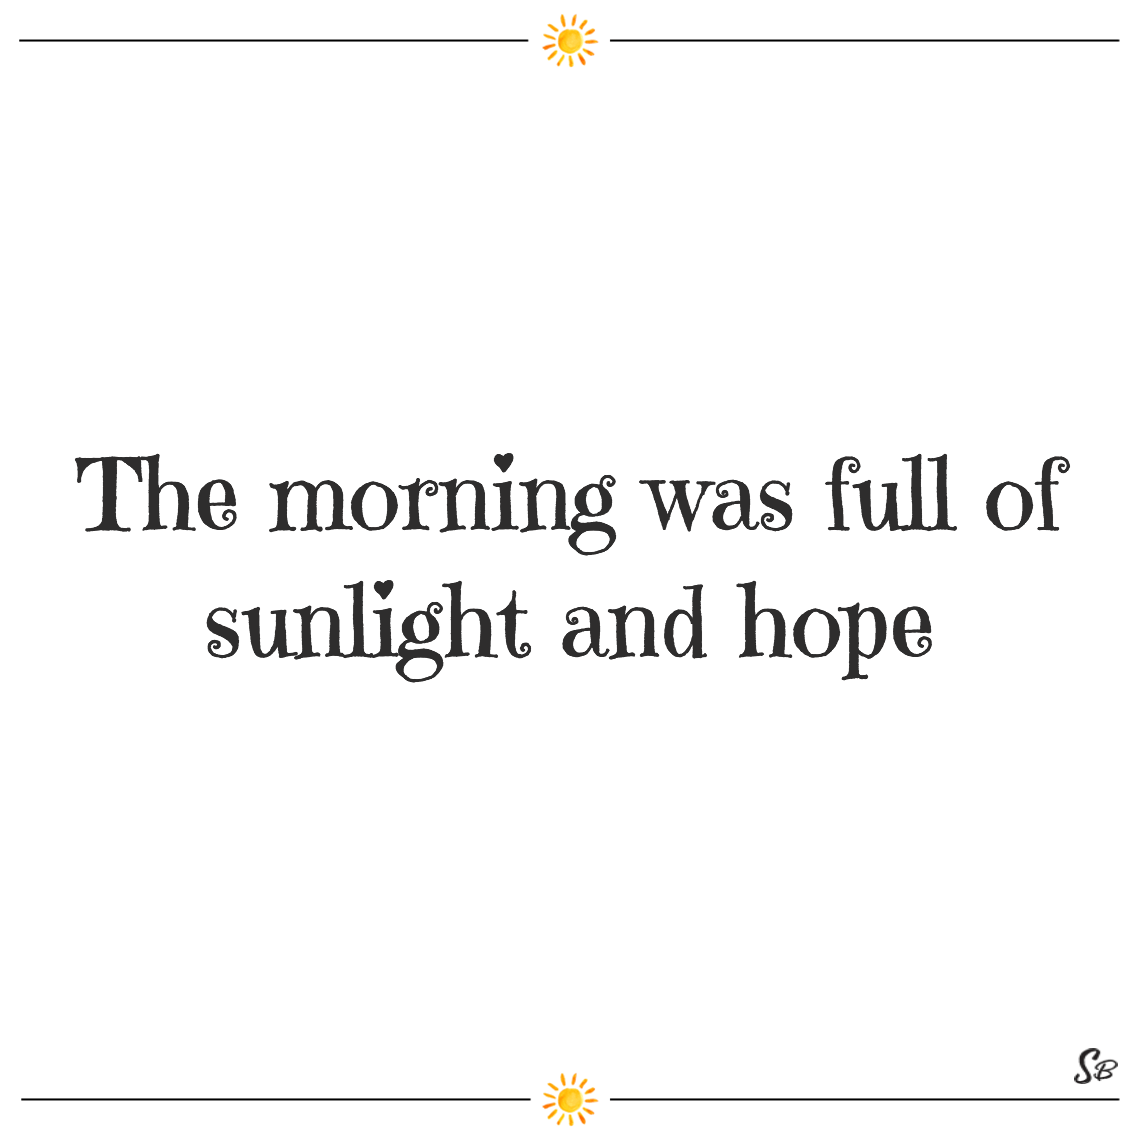 The morning was full of sunlight and hope kate chopin